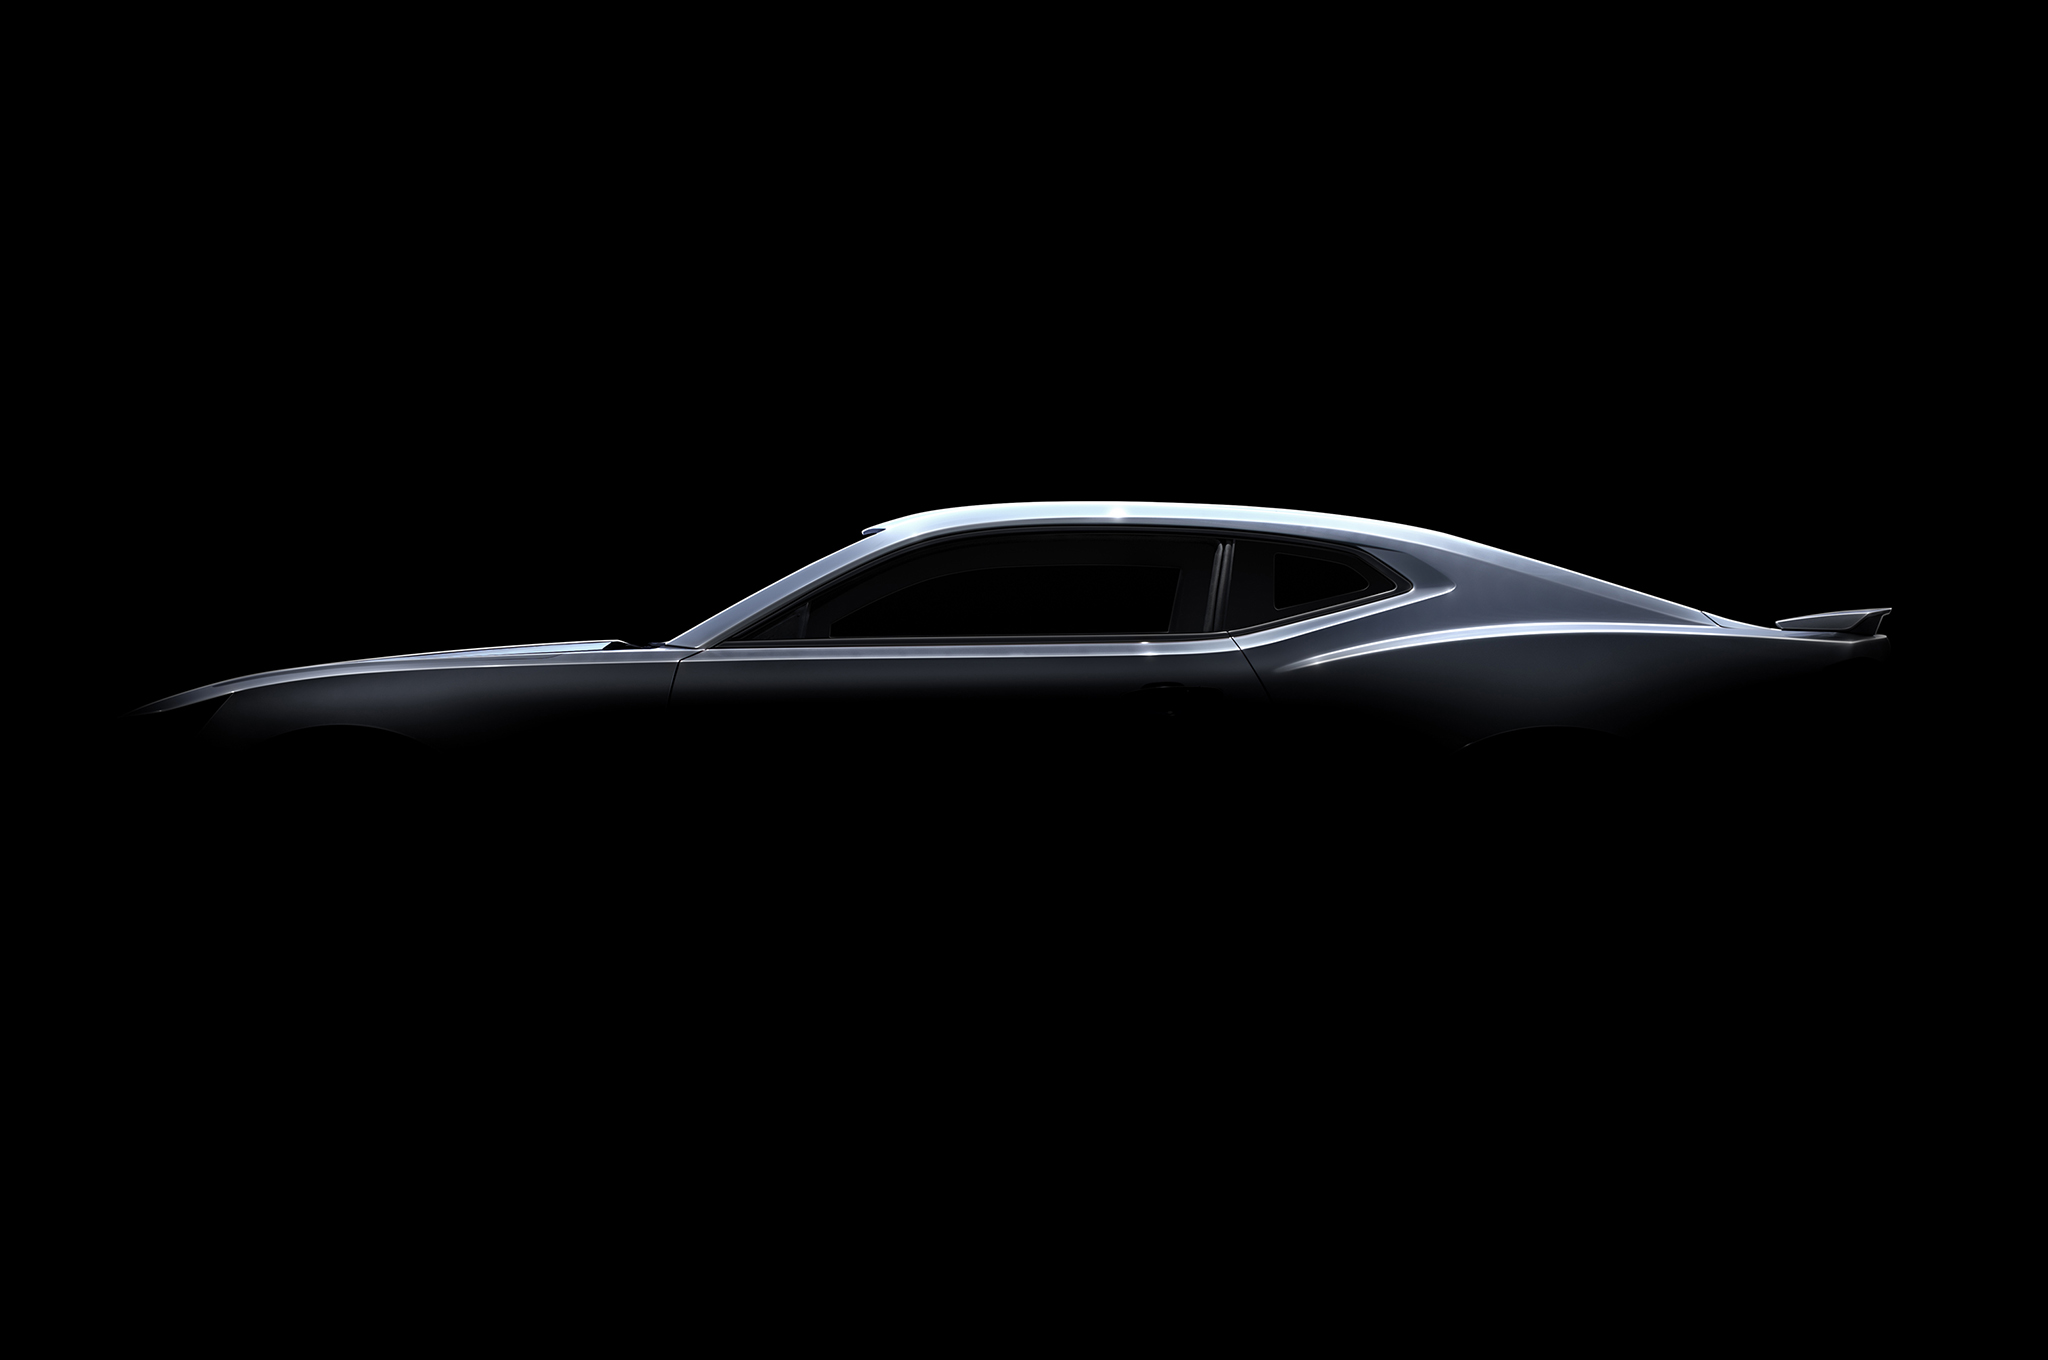 2016 Chevrolet Camaro Grille, Profile Teased Ahead of Reveal